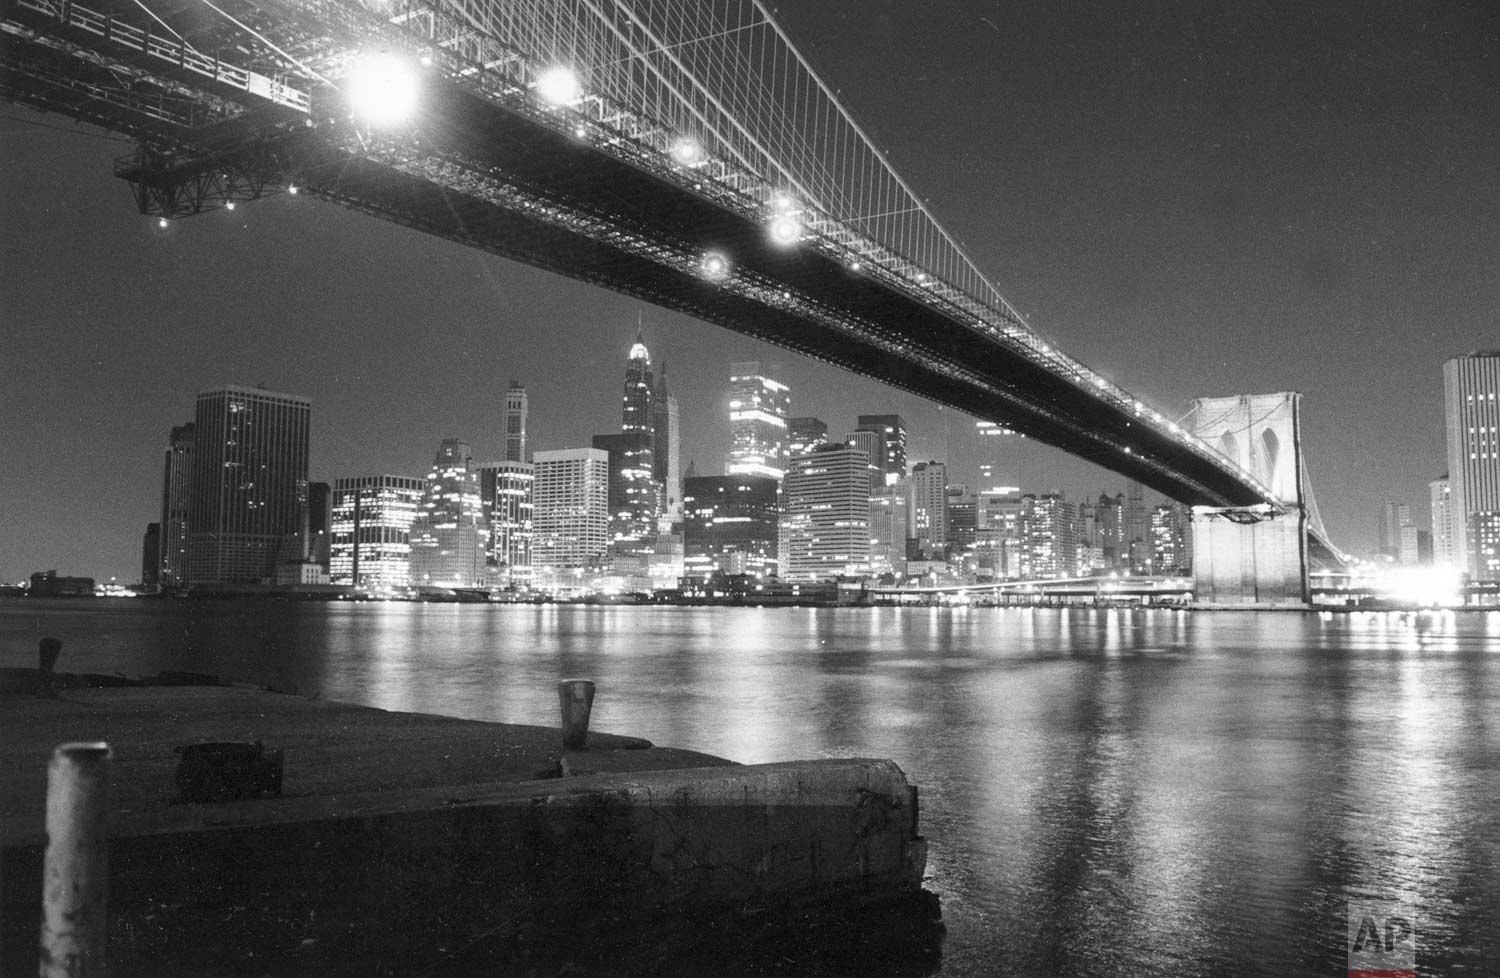 The lights of lower Manhattan shine across New York's East River in this nighttime view from under the Brooklyn Bridge on July 14, 1977.  Power has been restored in about 90 percent of the city, 24 hours after a city-wide electrical blackout.  (AP Photo/Ray Stubblebine)